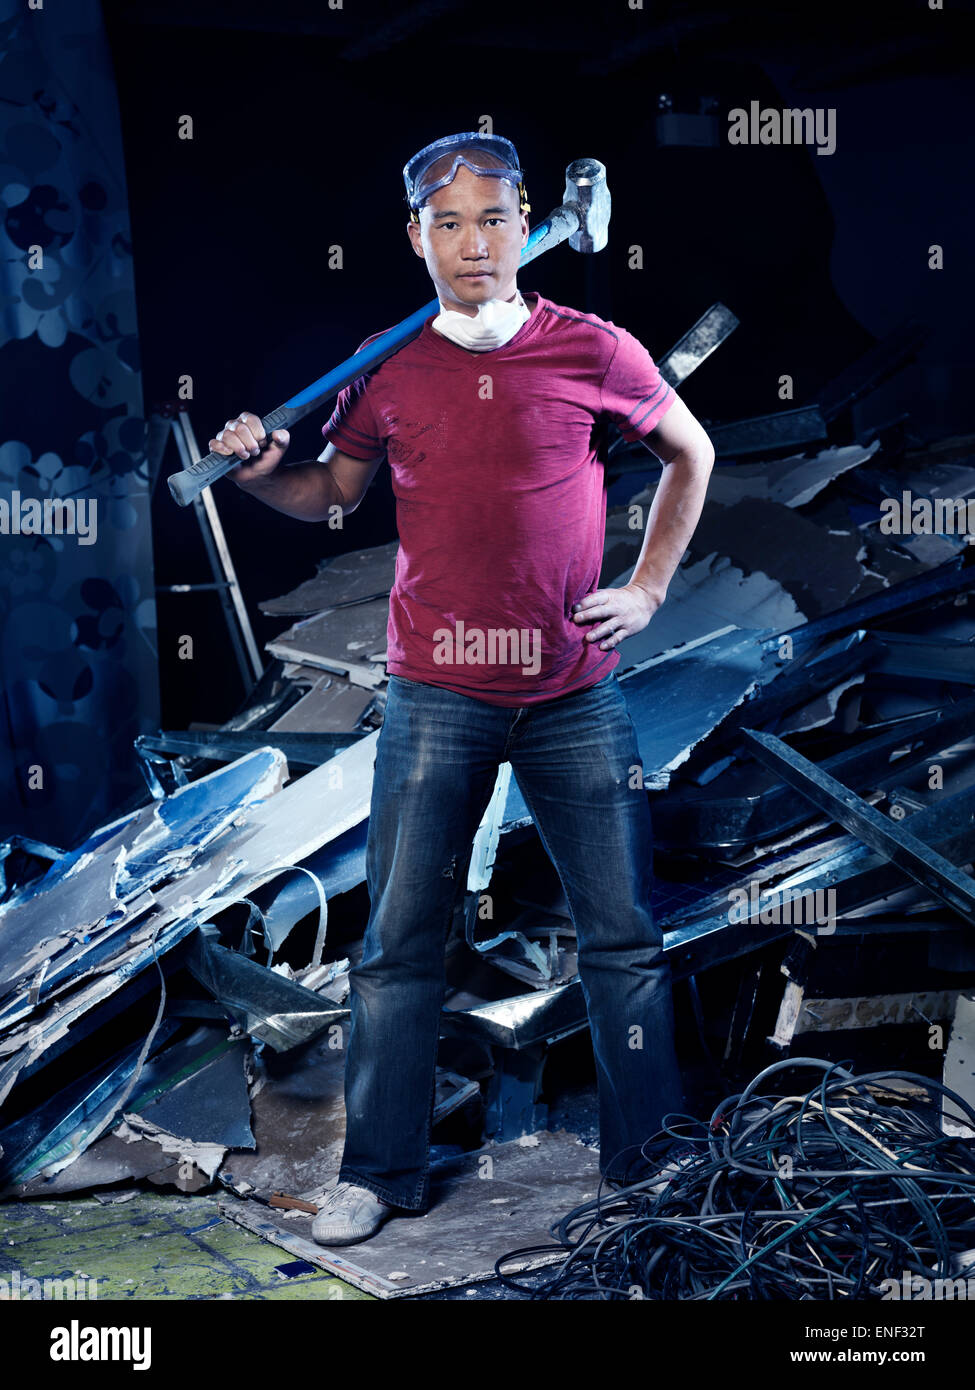 Portrait of a man with a sledgehammer doing renovations and demolition - Stock Image